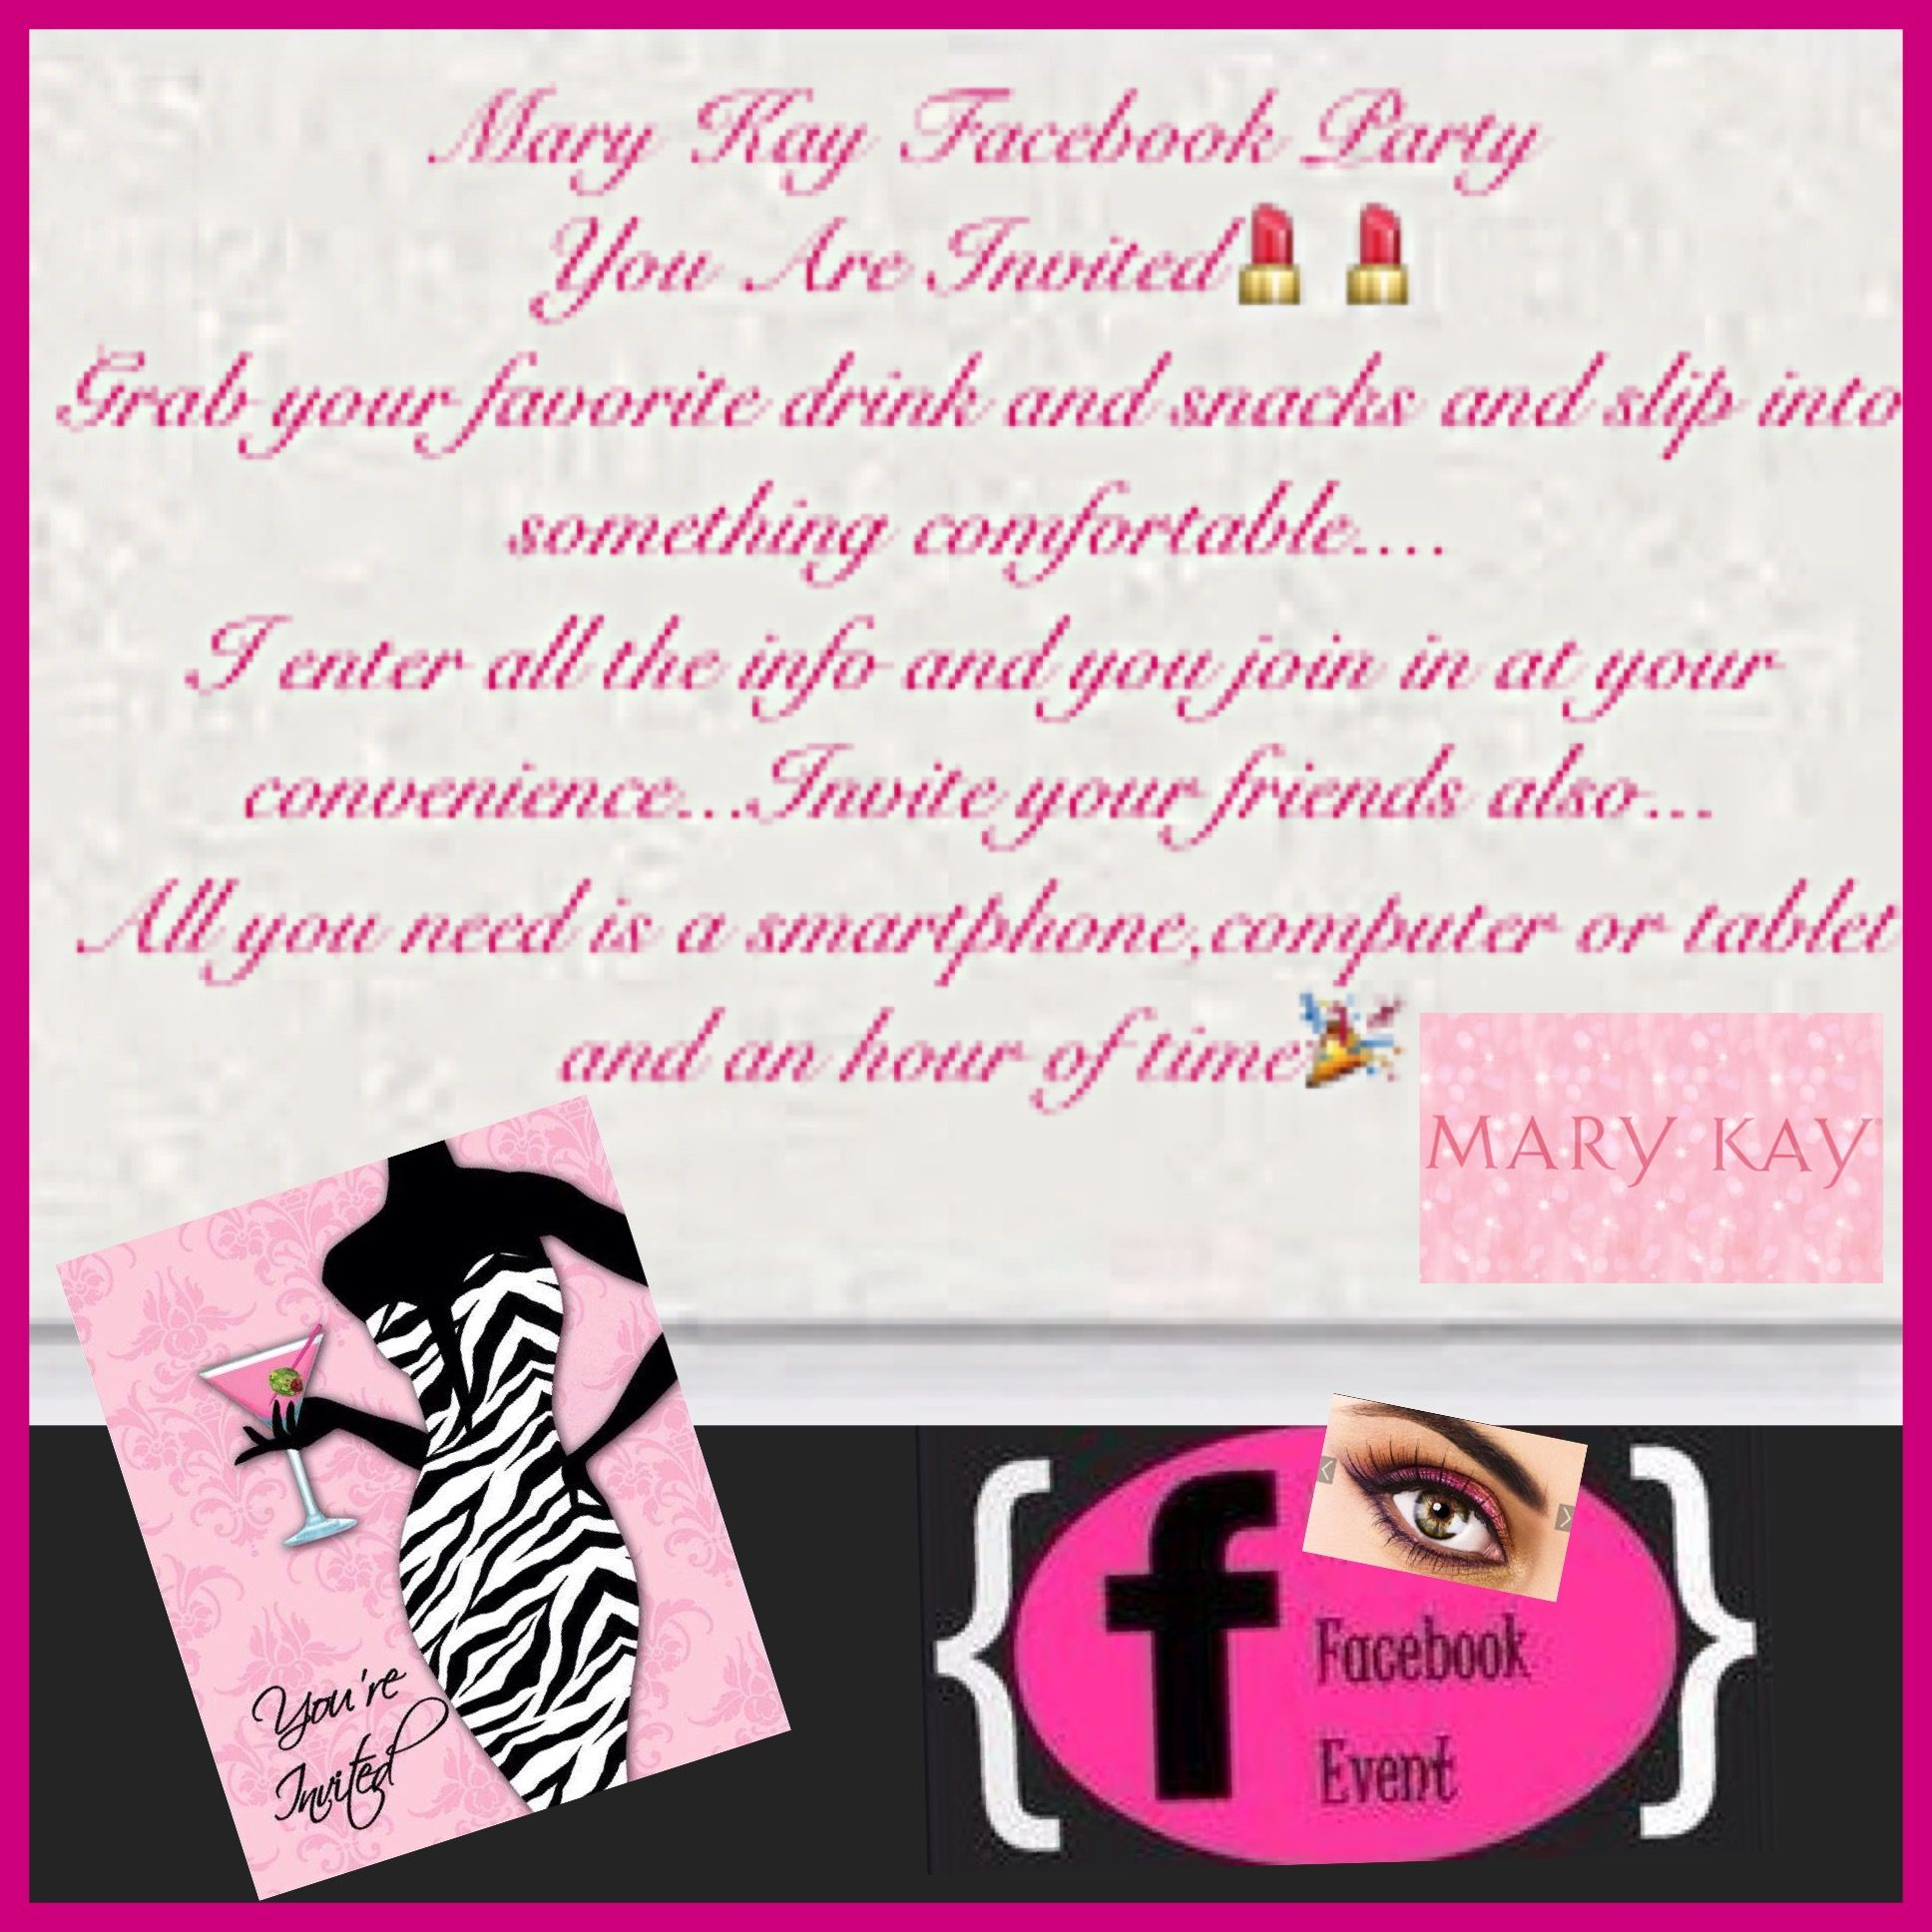 Your invited to a Mary Kay Facebook Party | Important | Pinterest ...